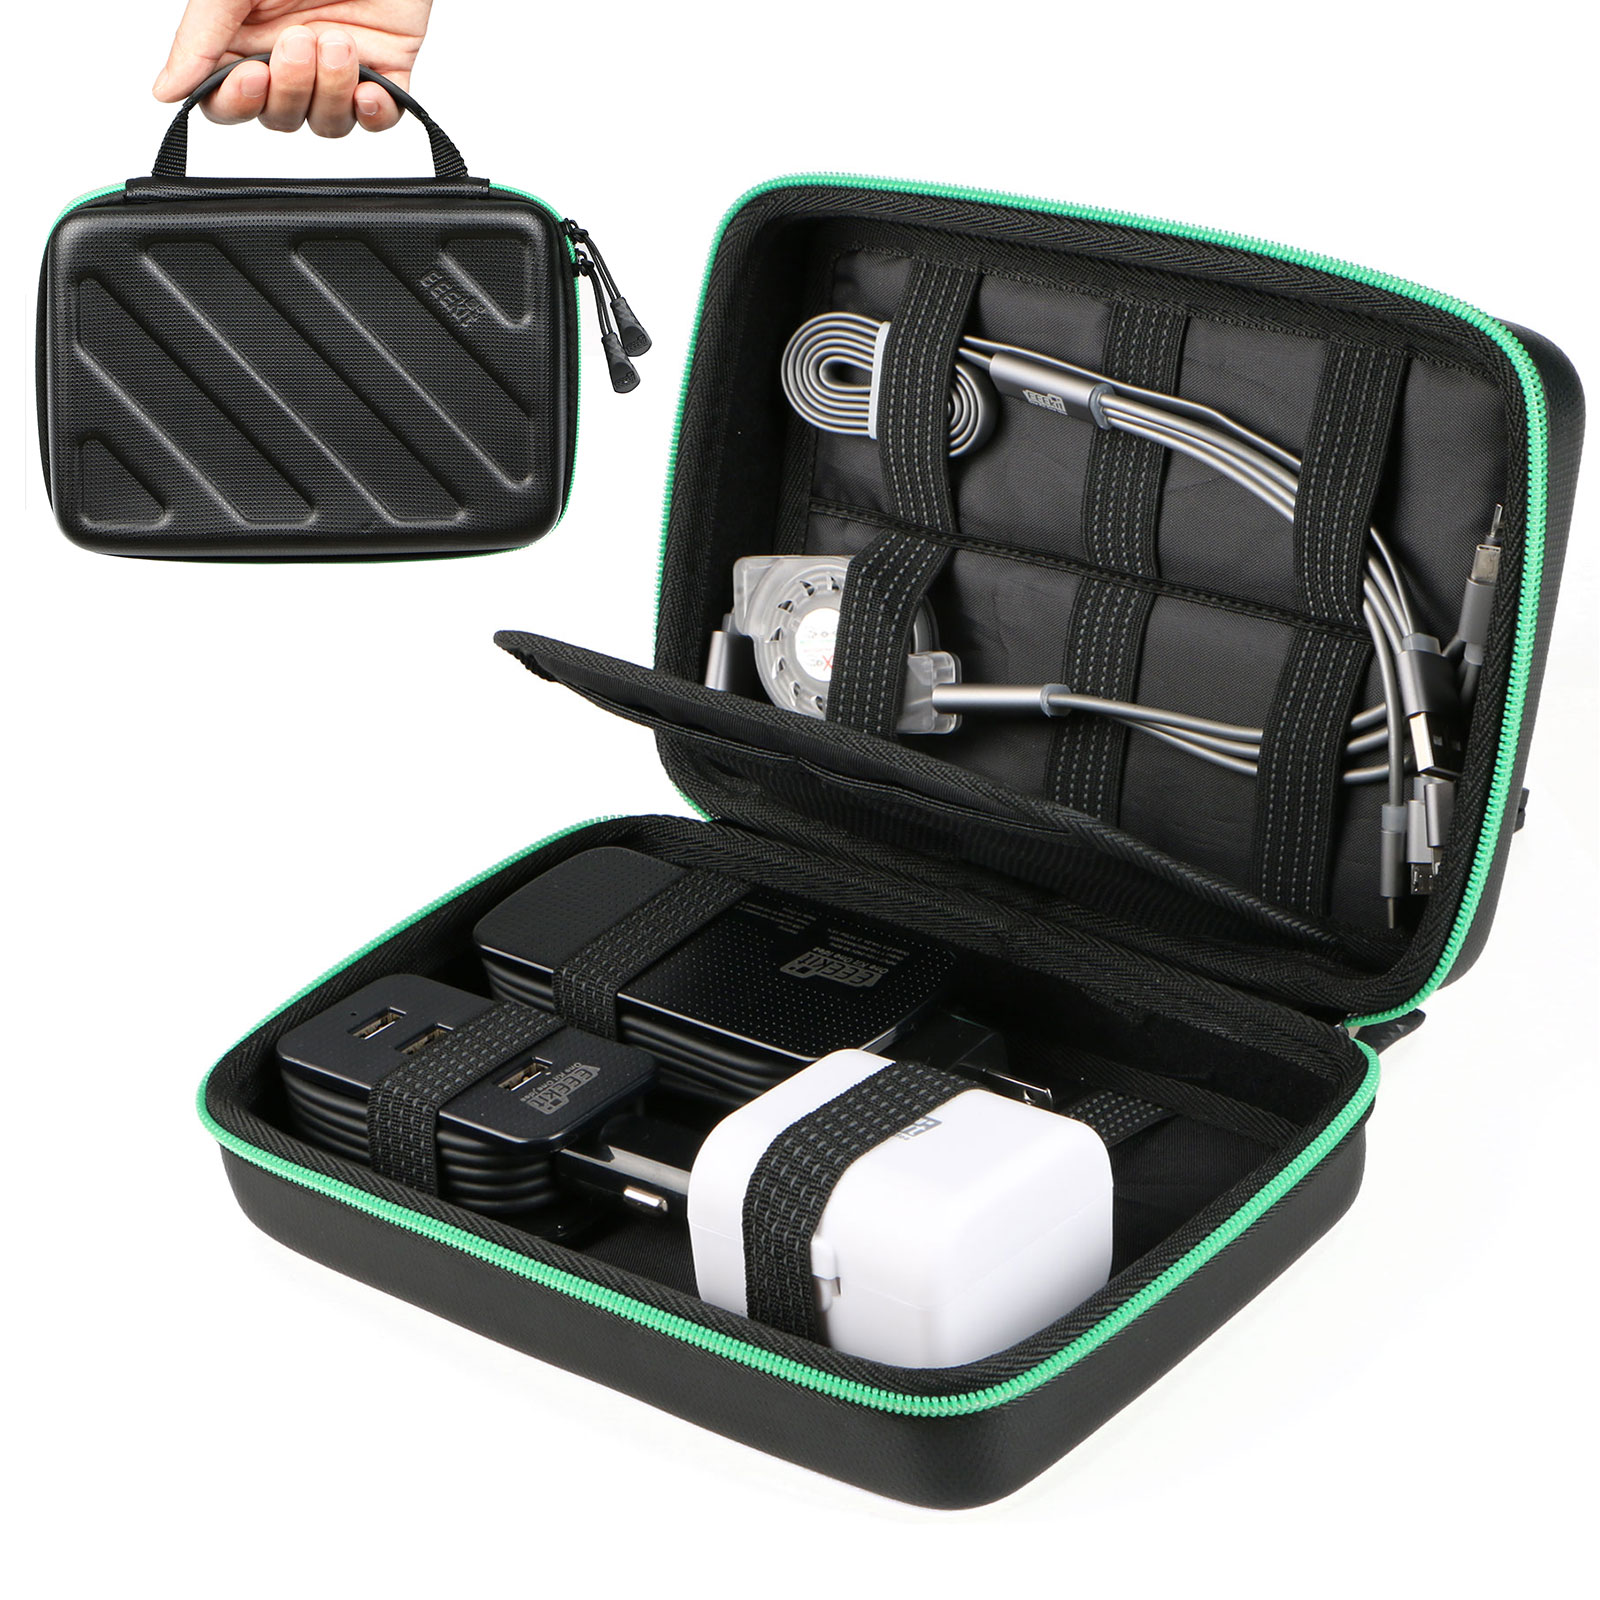 Portable Travel Cable Organizer Electronics Accessories Cases Digital Bag for Hard Drives, Charging Cords, USB Charger Adapter, USB Flash Drives, Data Cable (6.5 in x 5.9 in x 1.8 in)